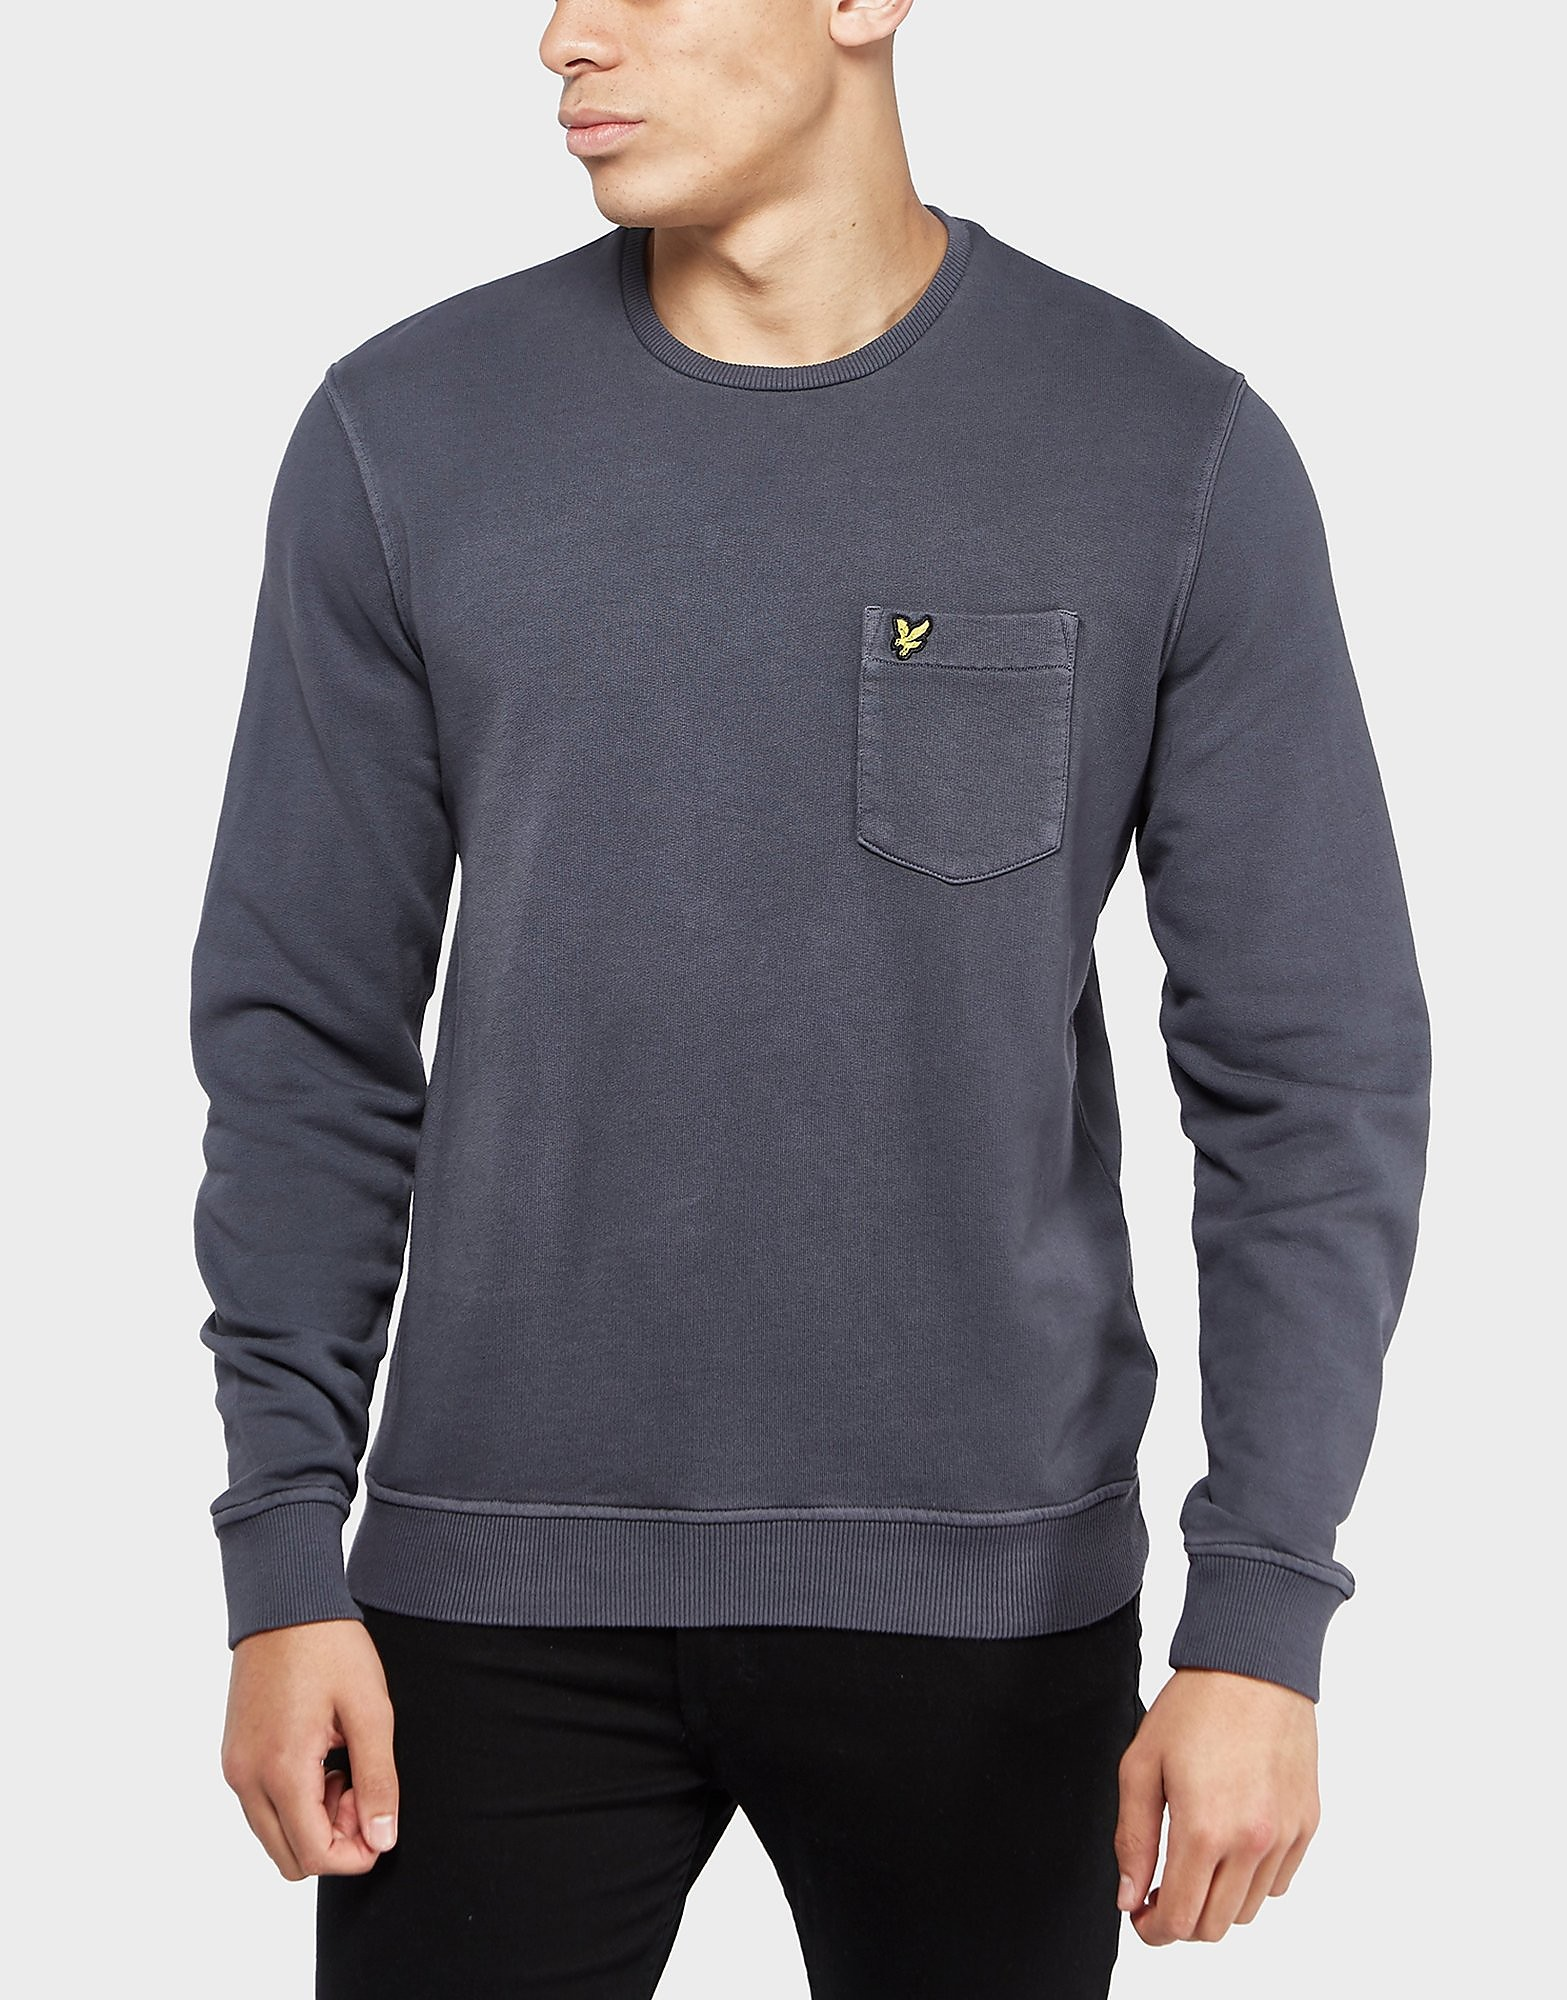 Lyle & Scott Pocket Crew Sweatshirt